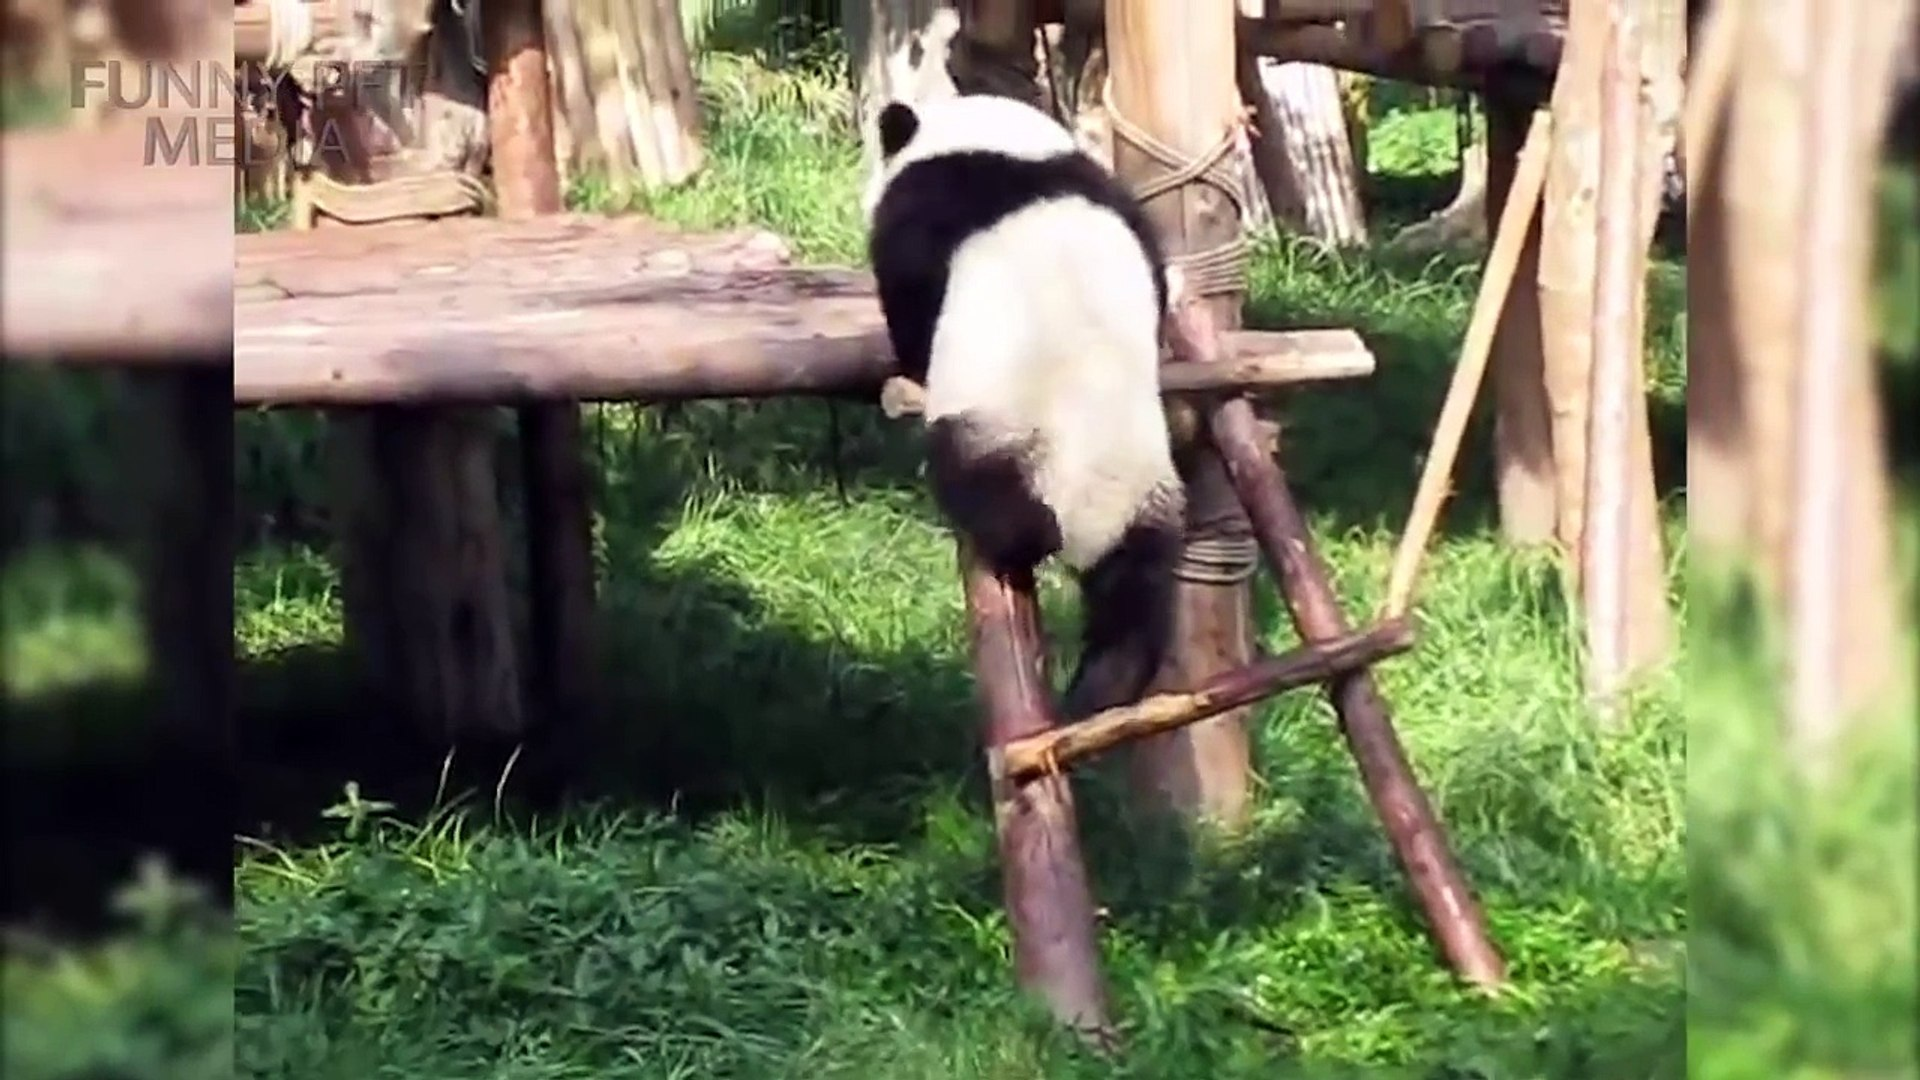 Funny Panda VIDEOS Funny Pets - cute funny animals funny panda bear,funny animals video 2017